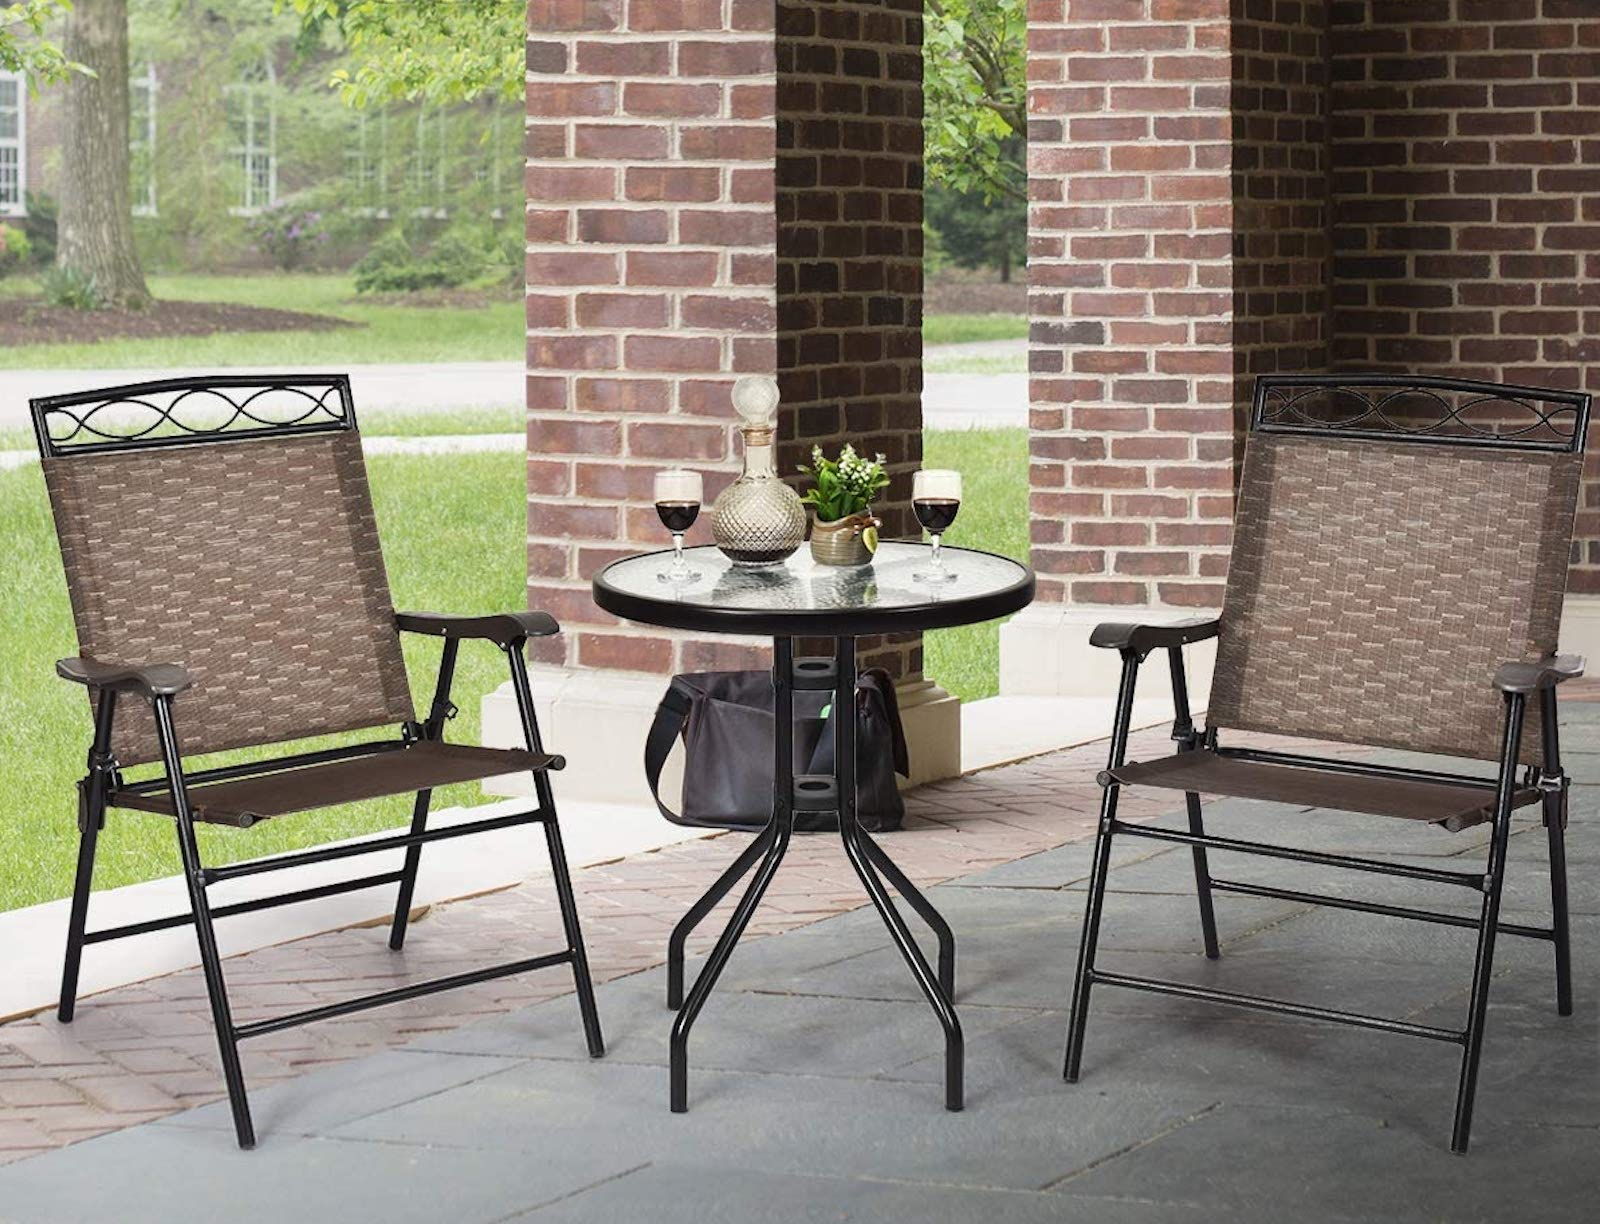 Two patio chairs on either side of a round, glass-top bistro table on a stone patio